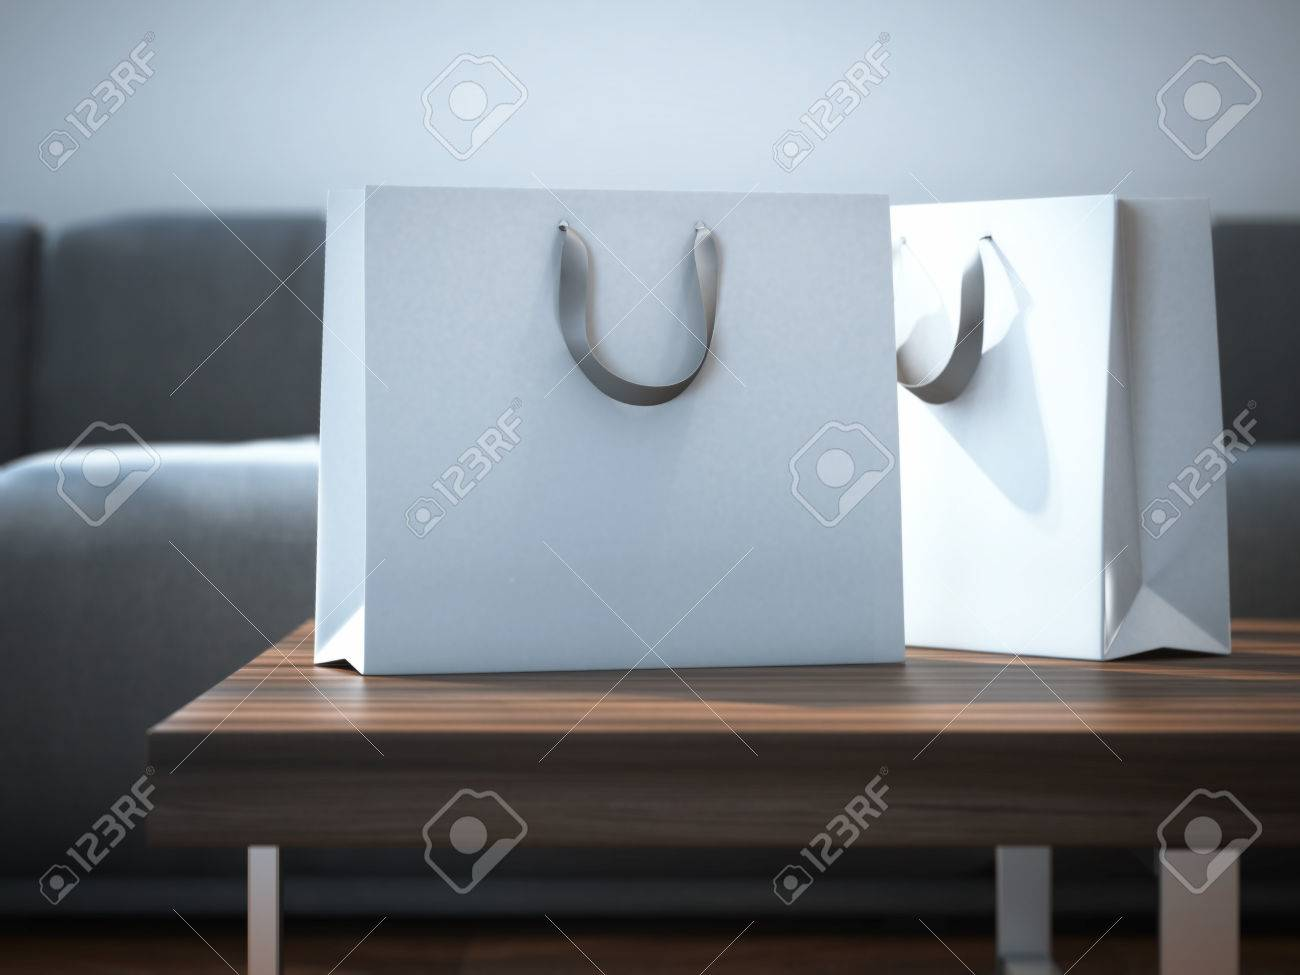 Ttwo white packages on a wooden table. 3d rendering - 47062976